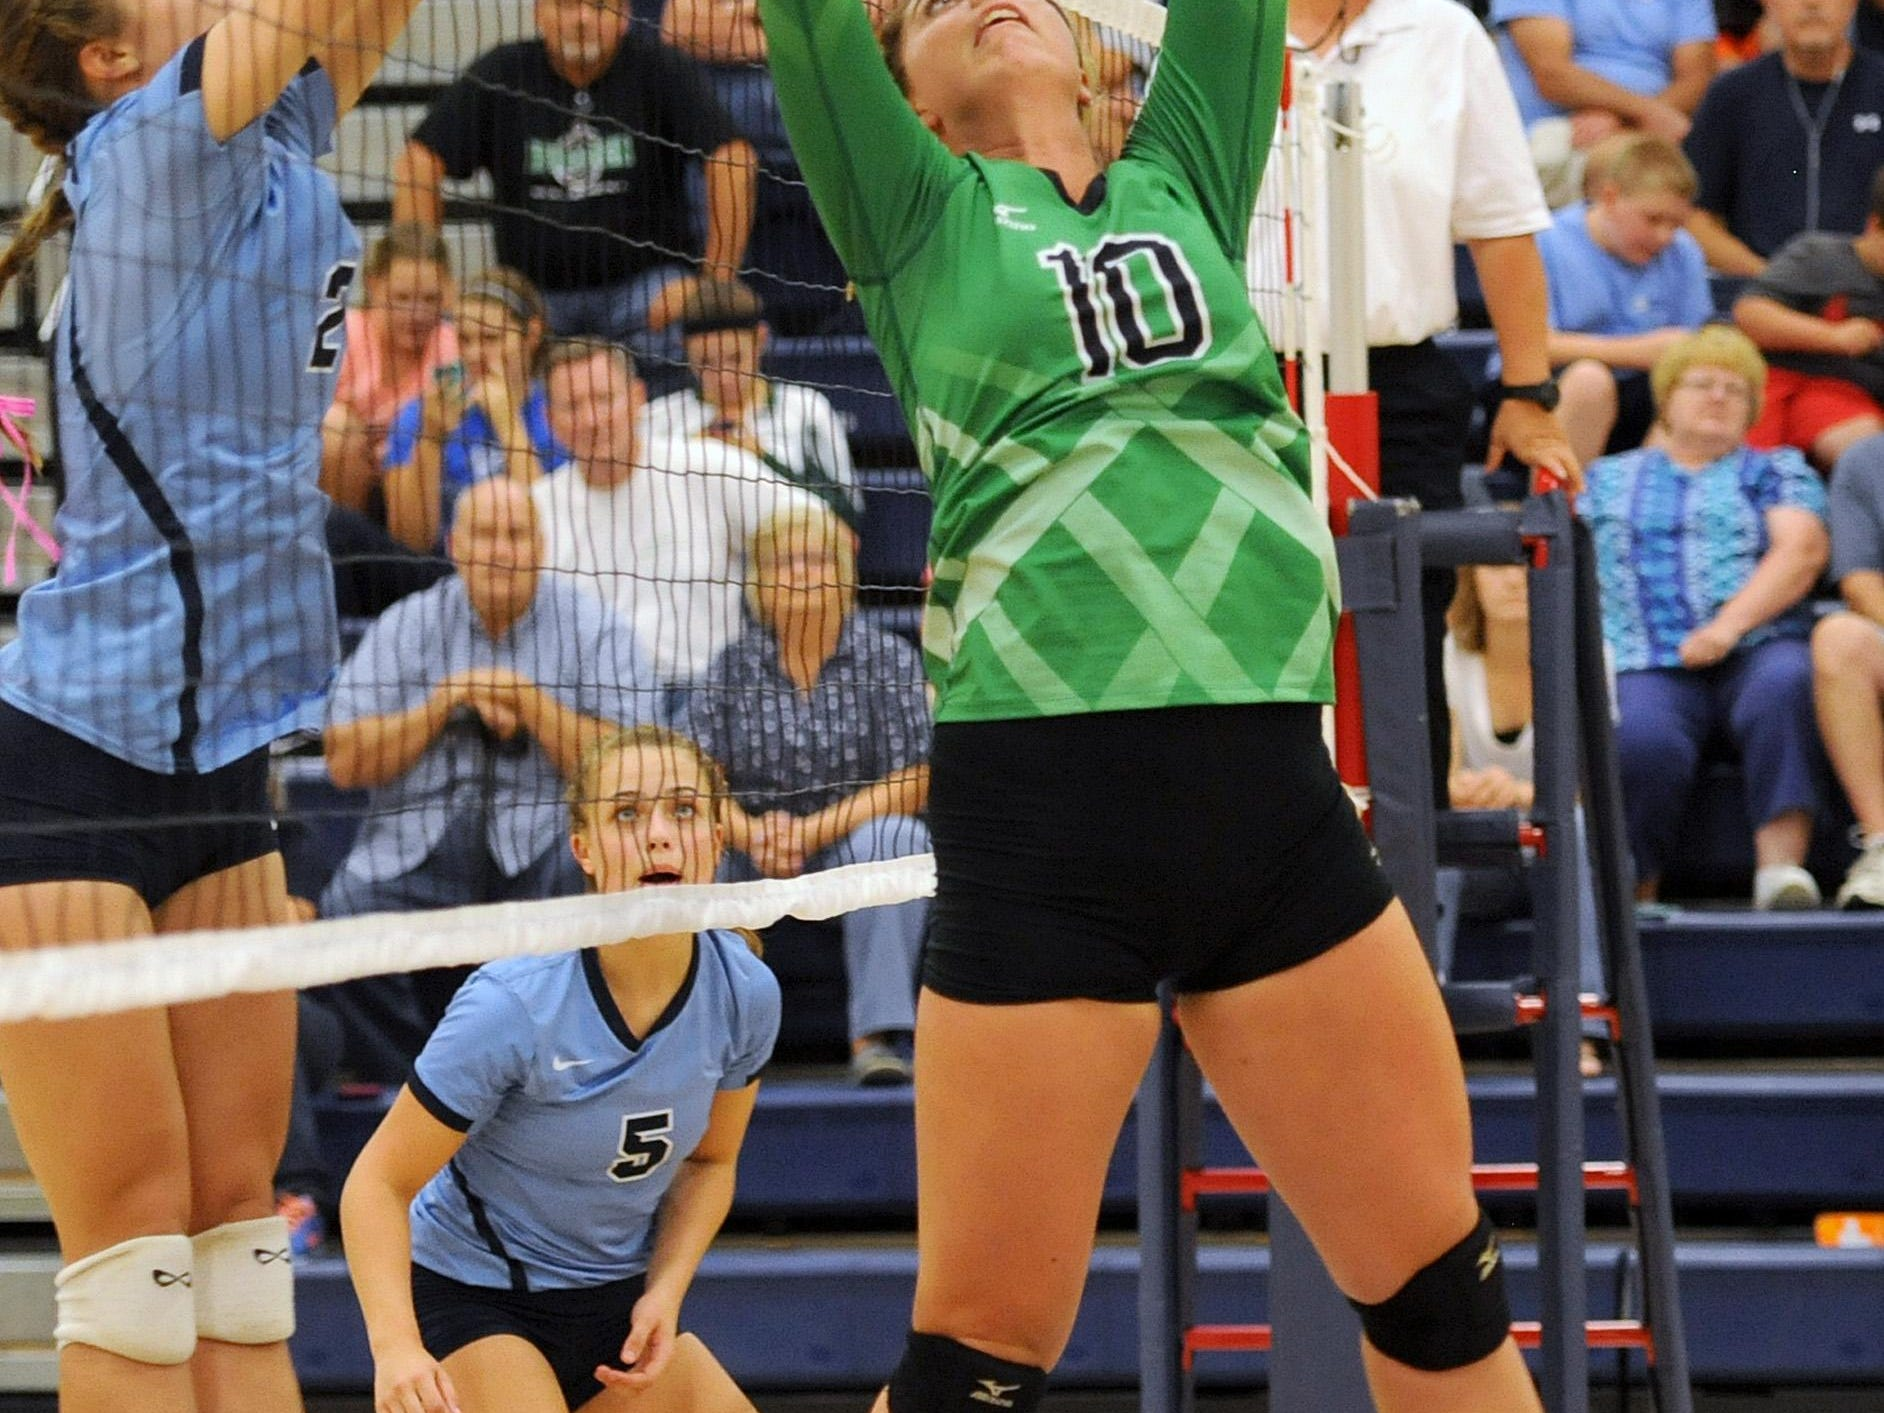 Huntington's Dylanna Gragg sets the volleyball up and over the net during the game against Adena High School at Adena on Tuesday. The final score was Adena 3, Huntington 0.